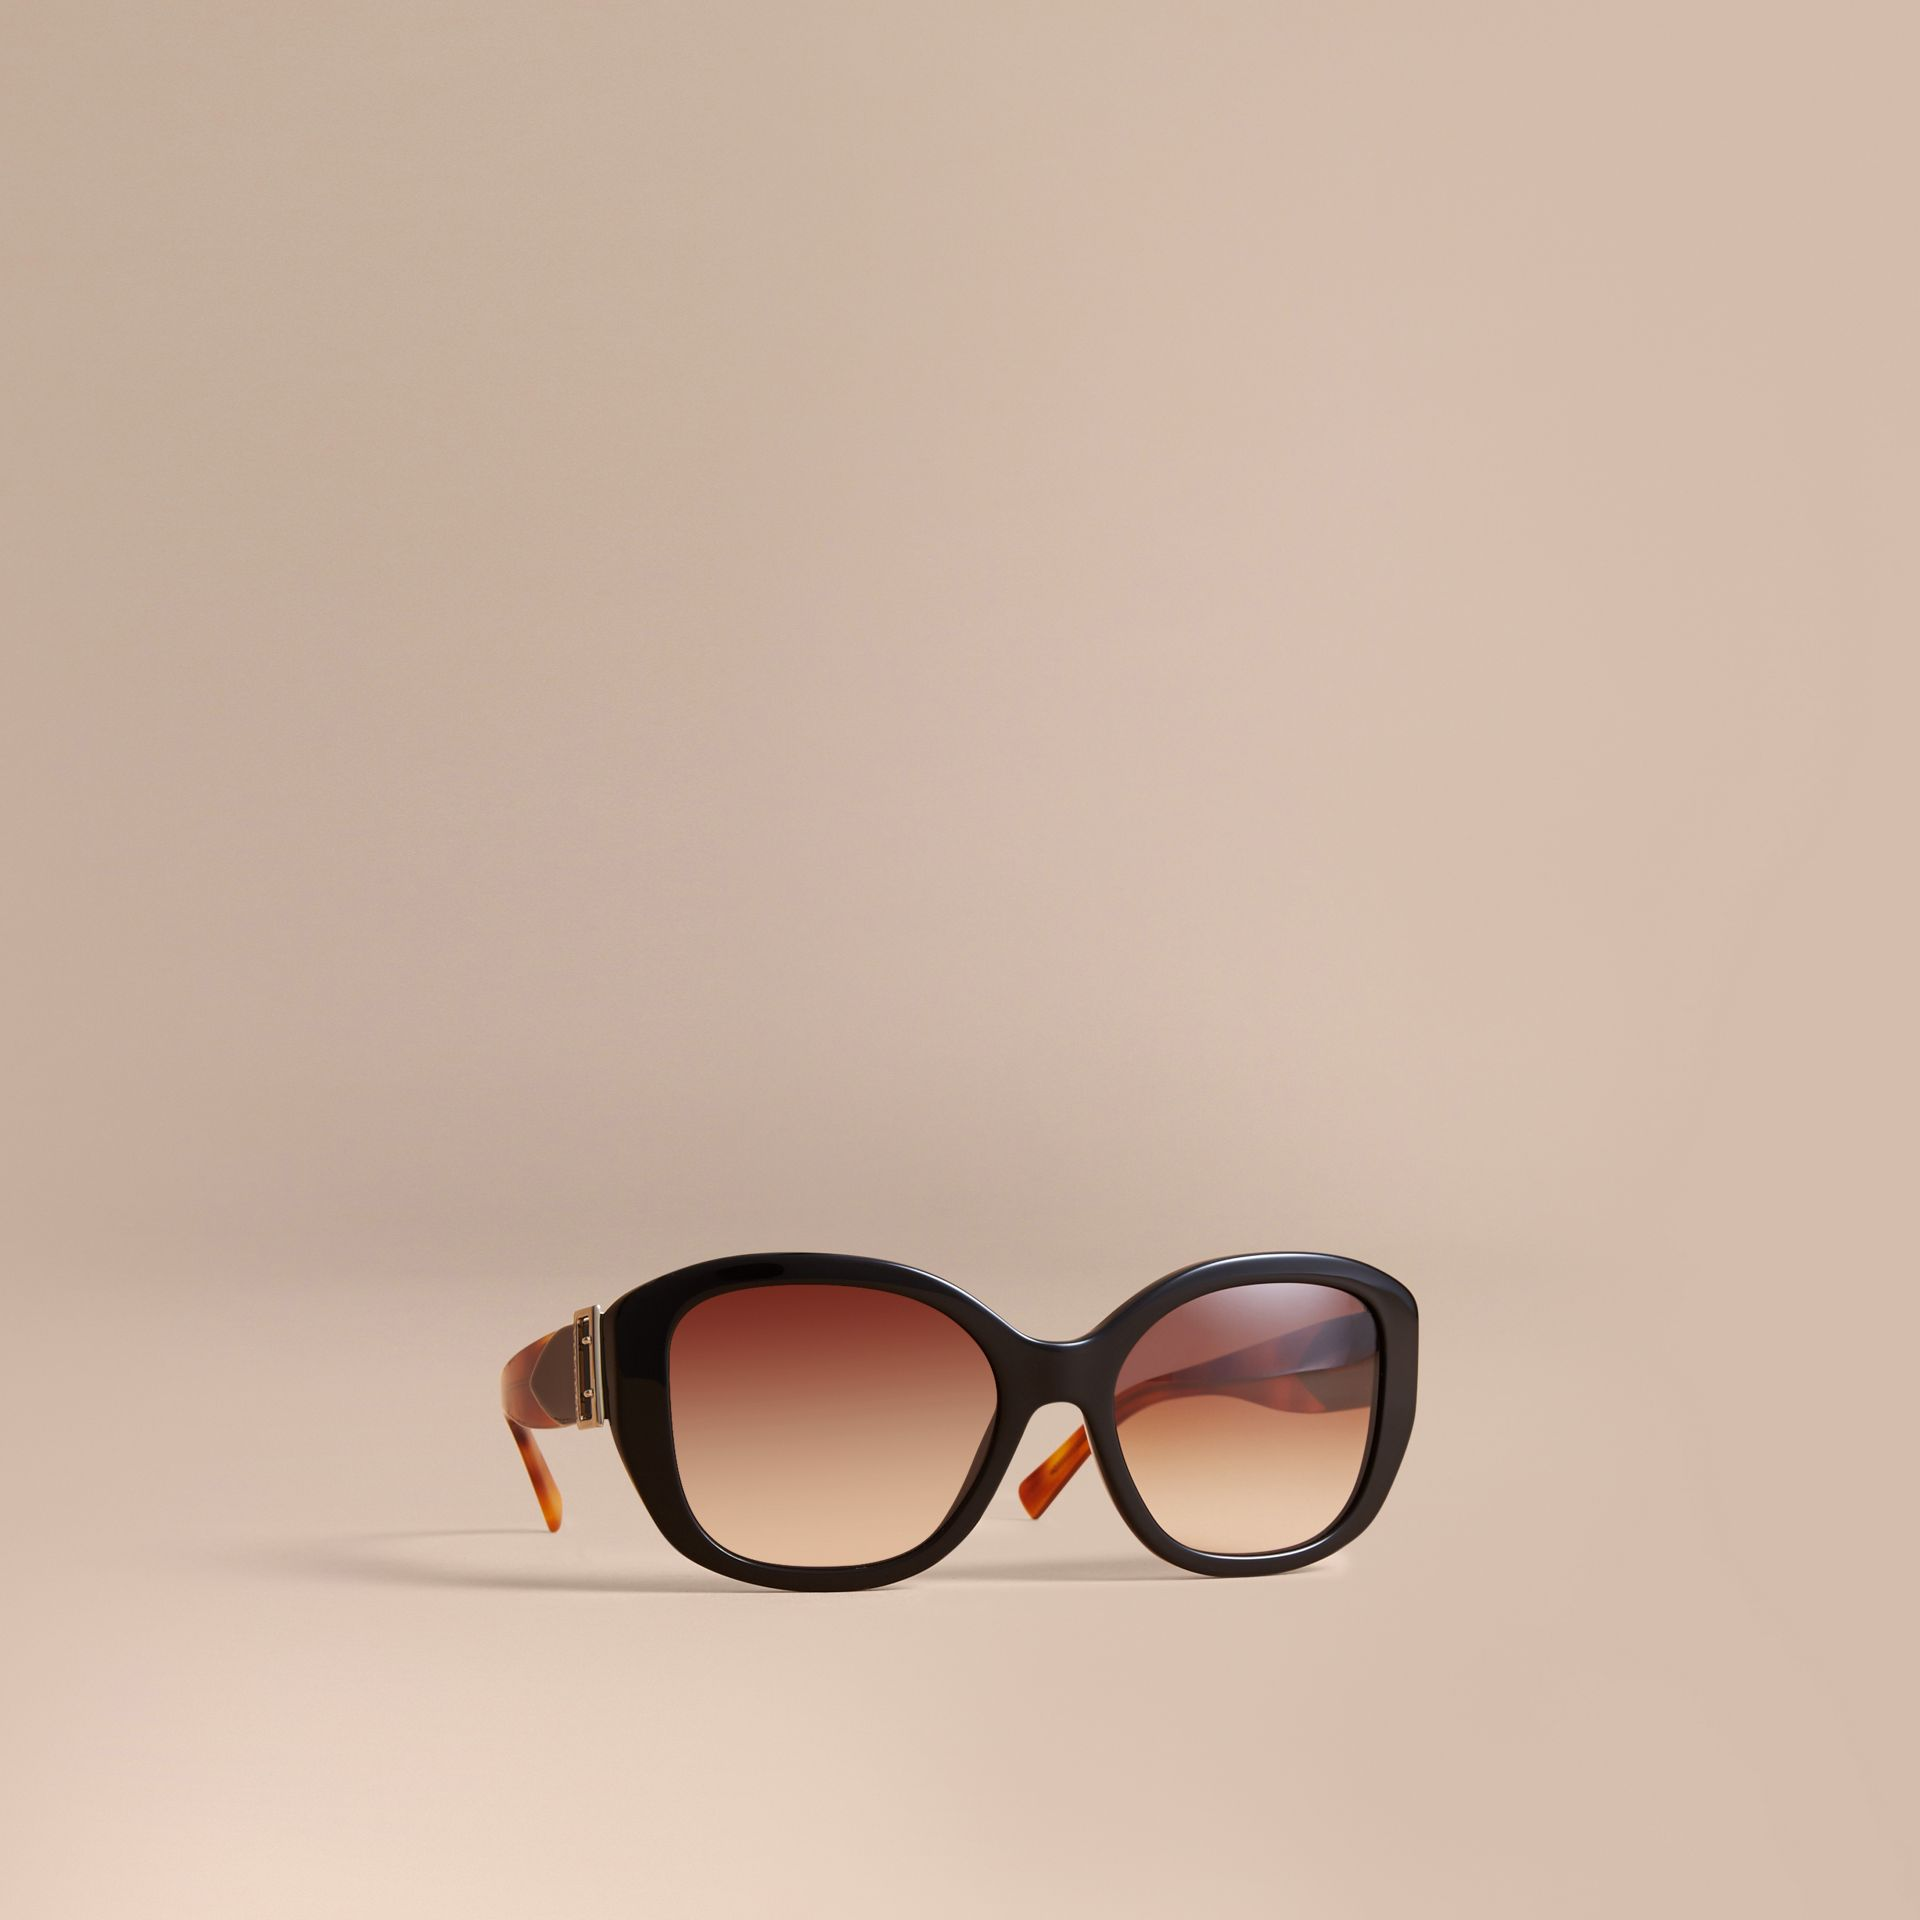 Buckle Detail Oversize Square Frame Sunglasses in Black - Women | Burberry United Kingdom - gallery image 0